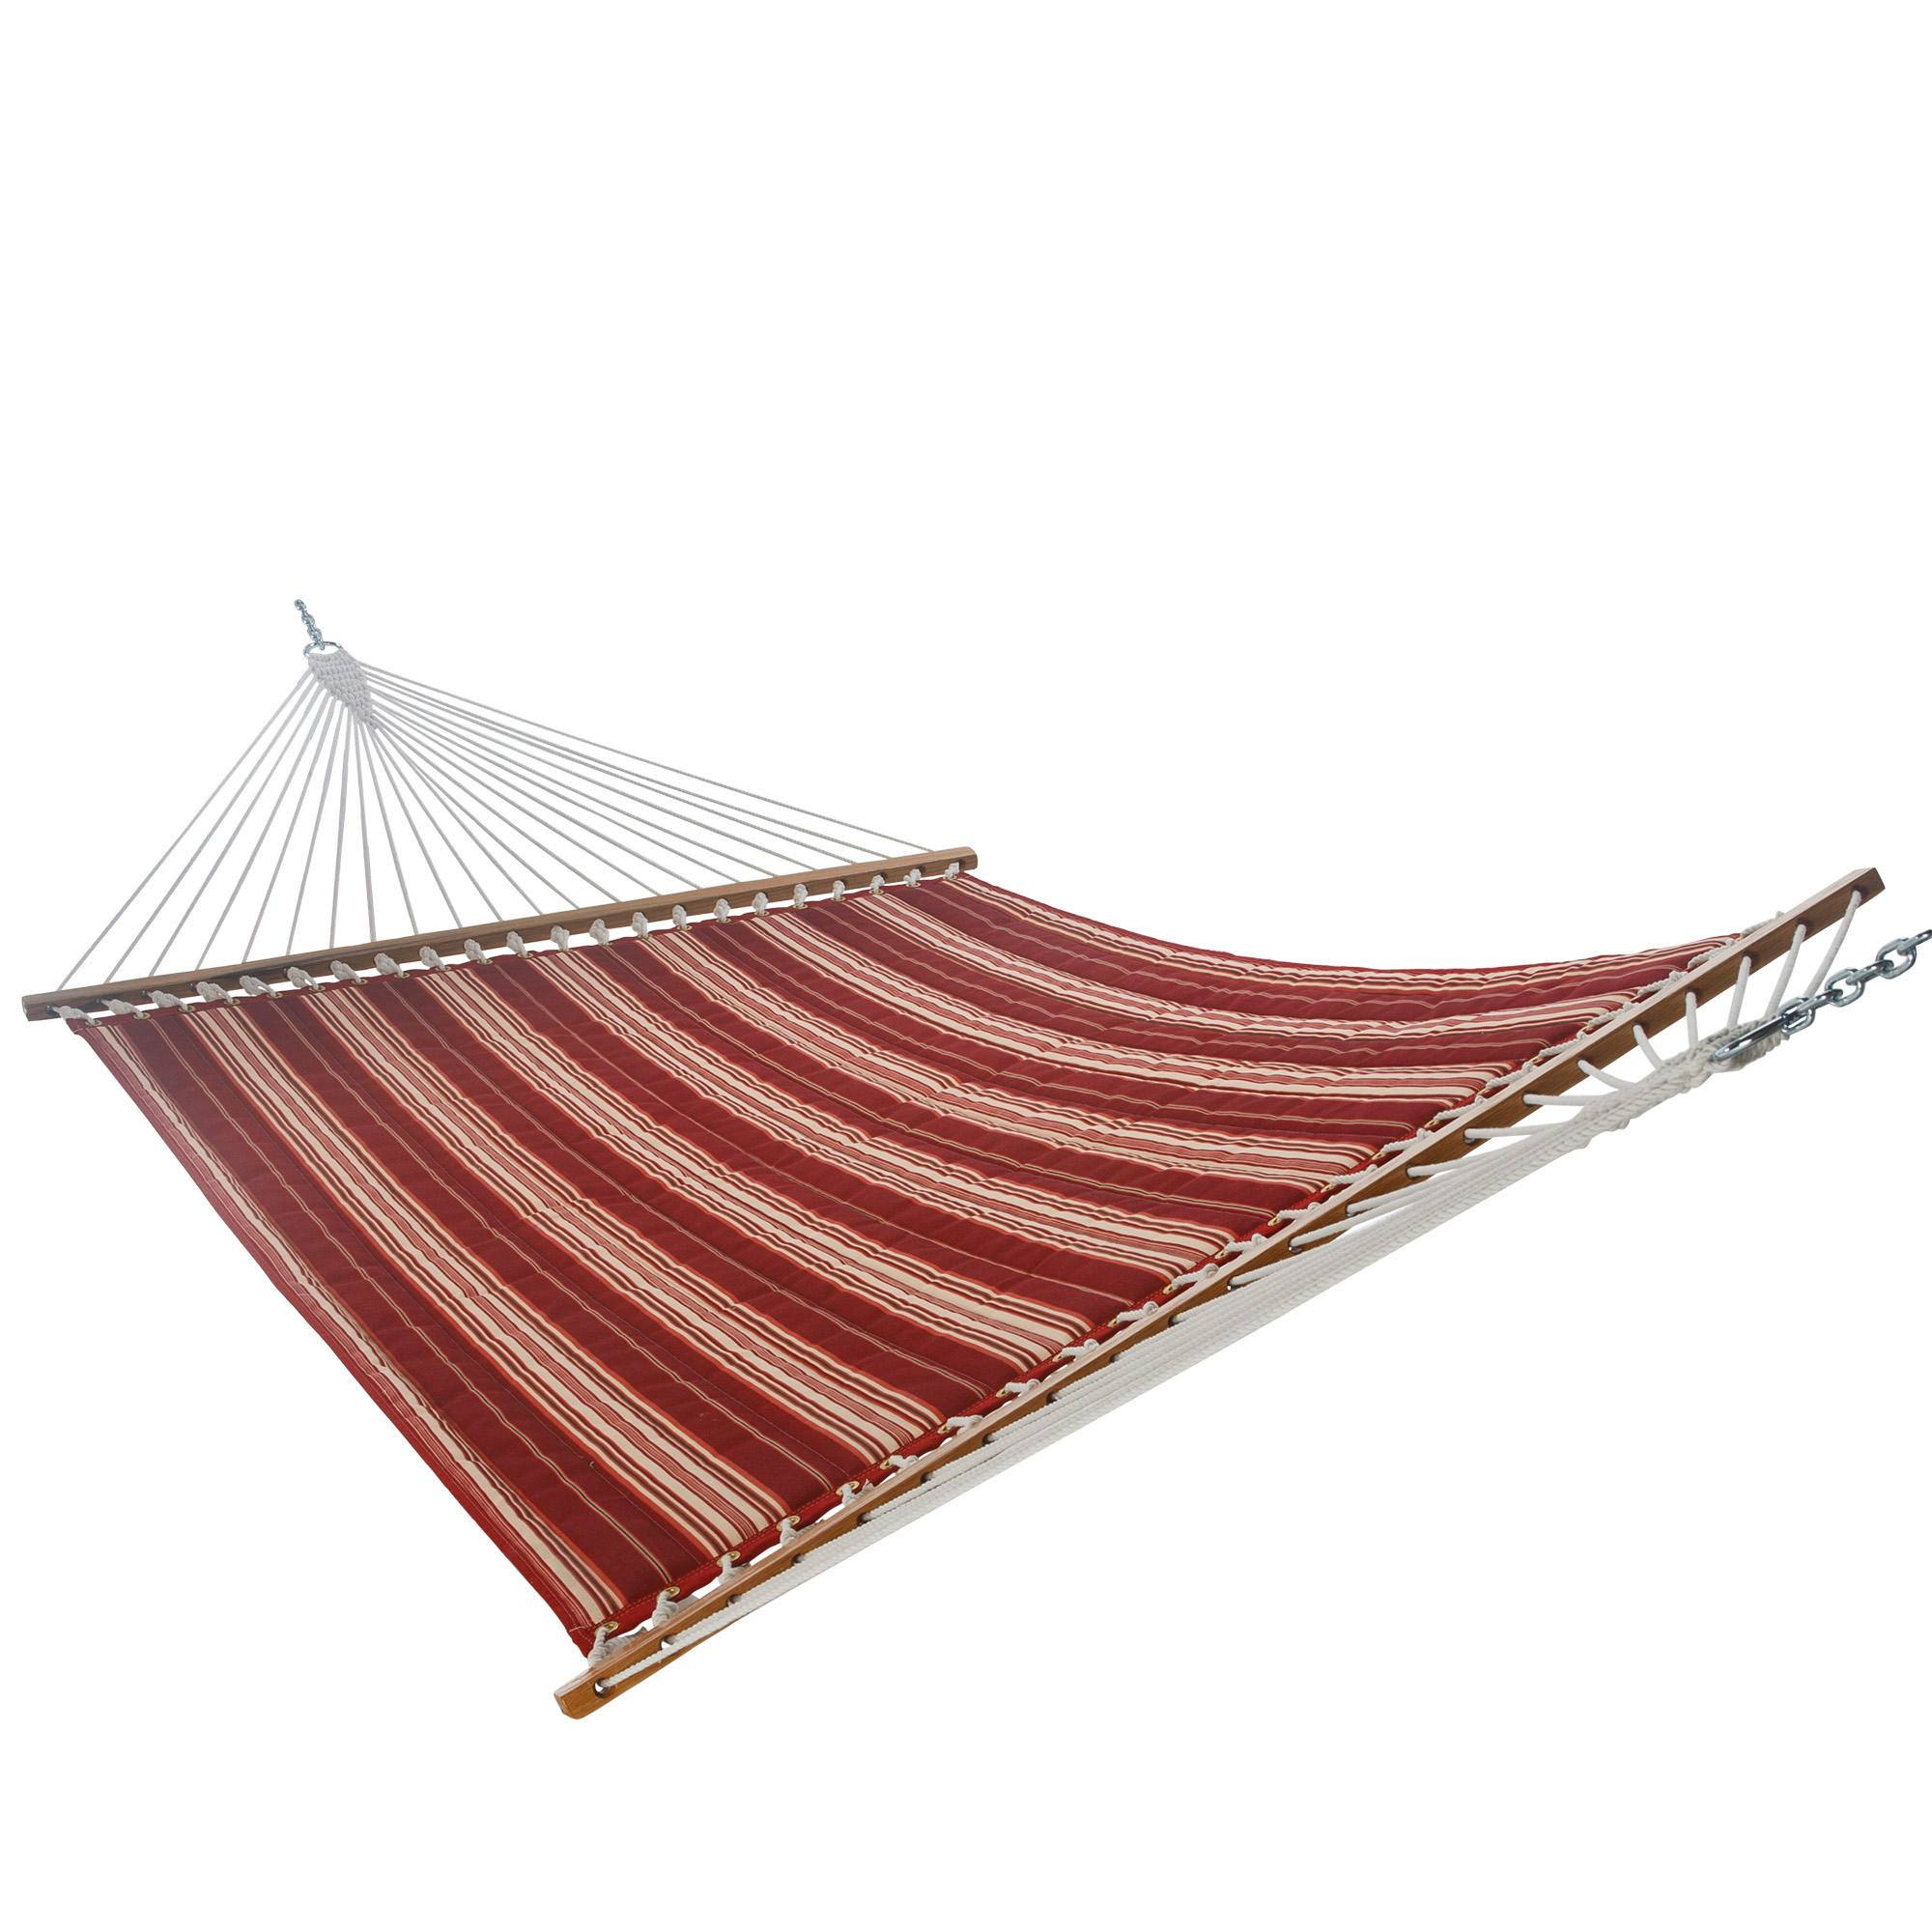 processed furniture rookie fabric img outdoor with hammocks swing red hammock product